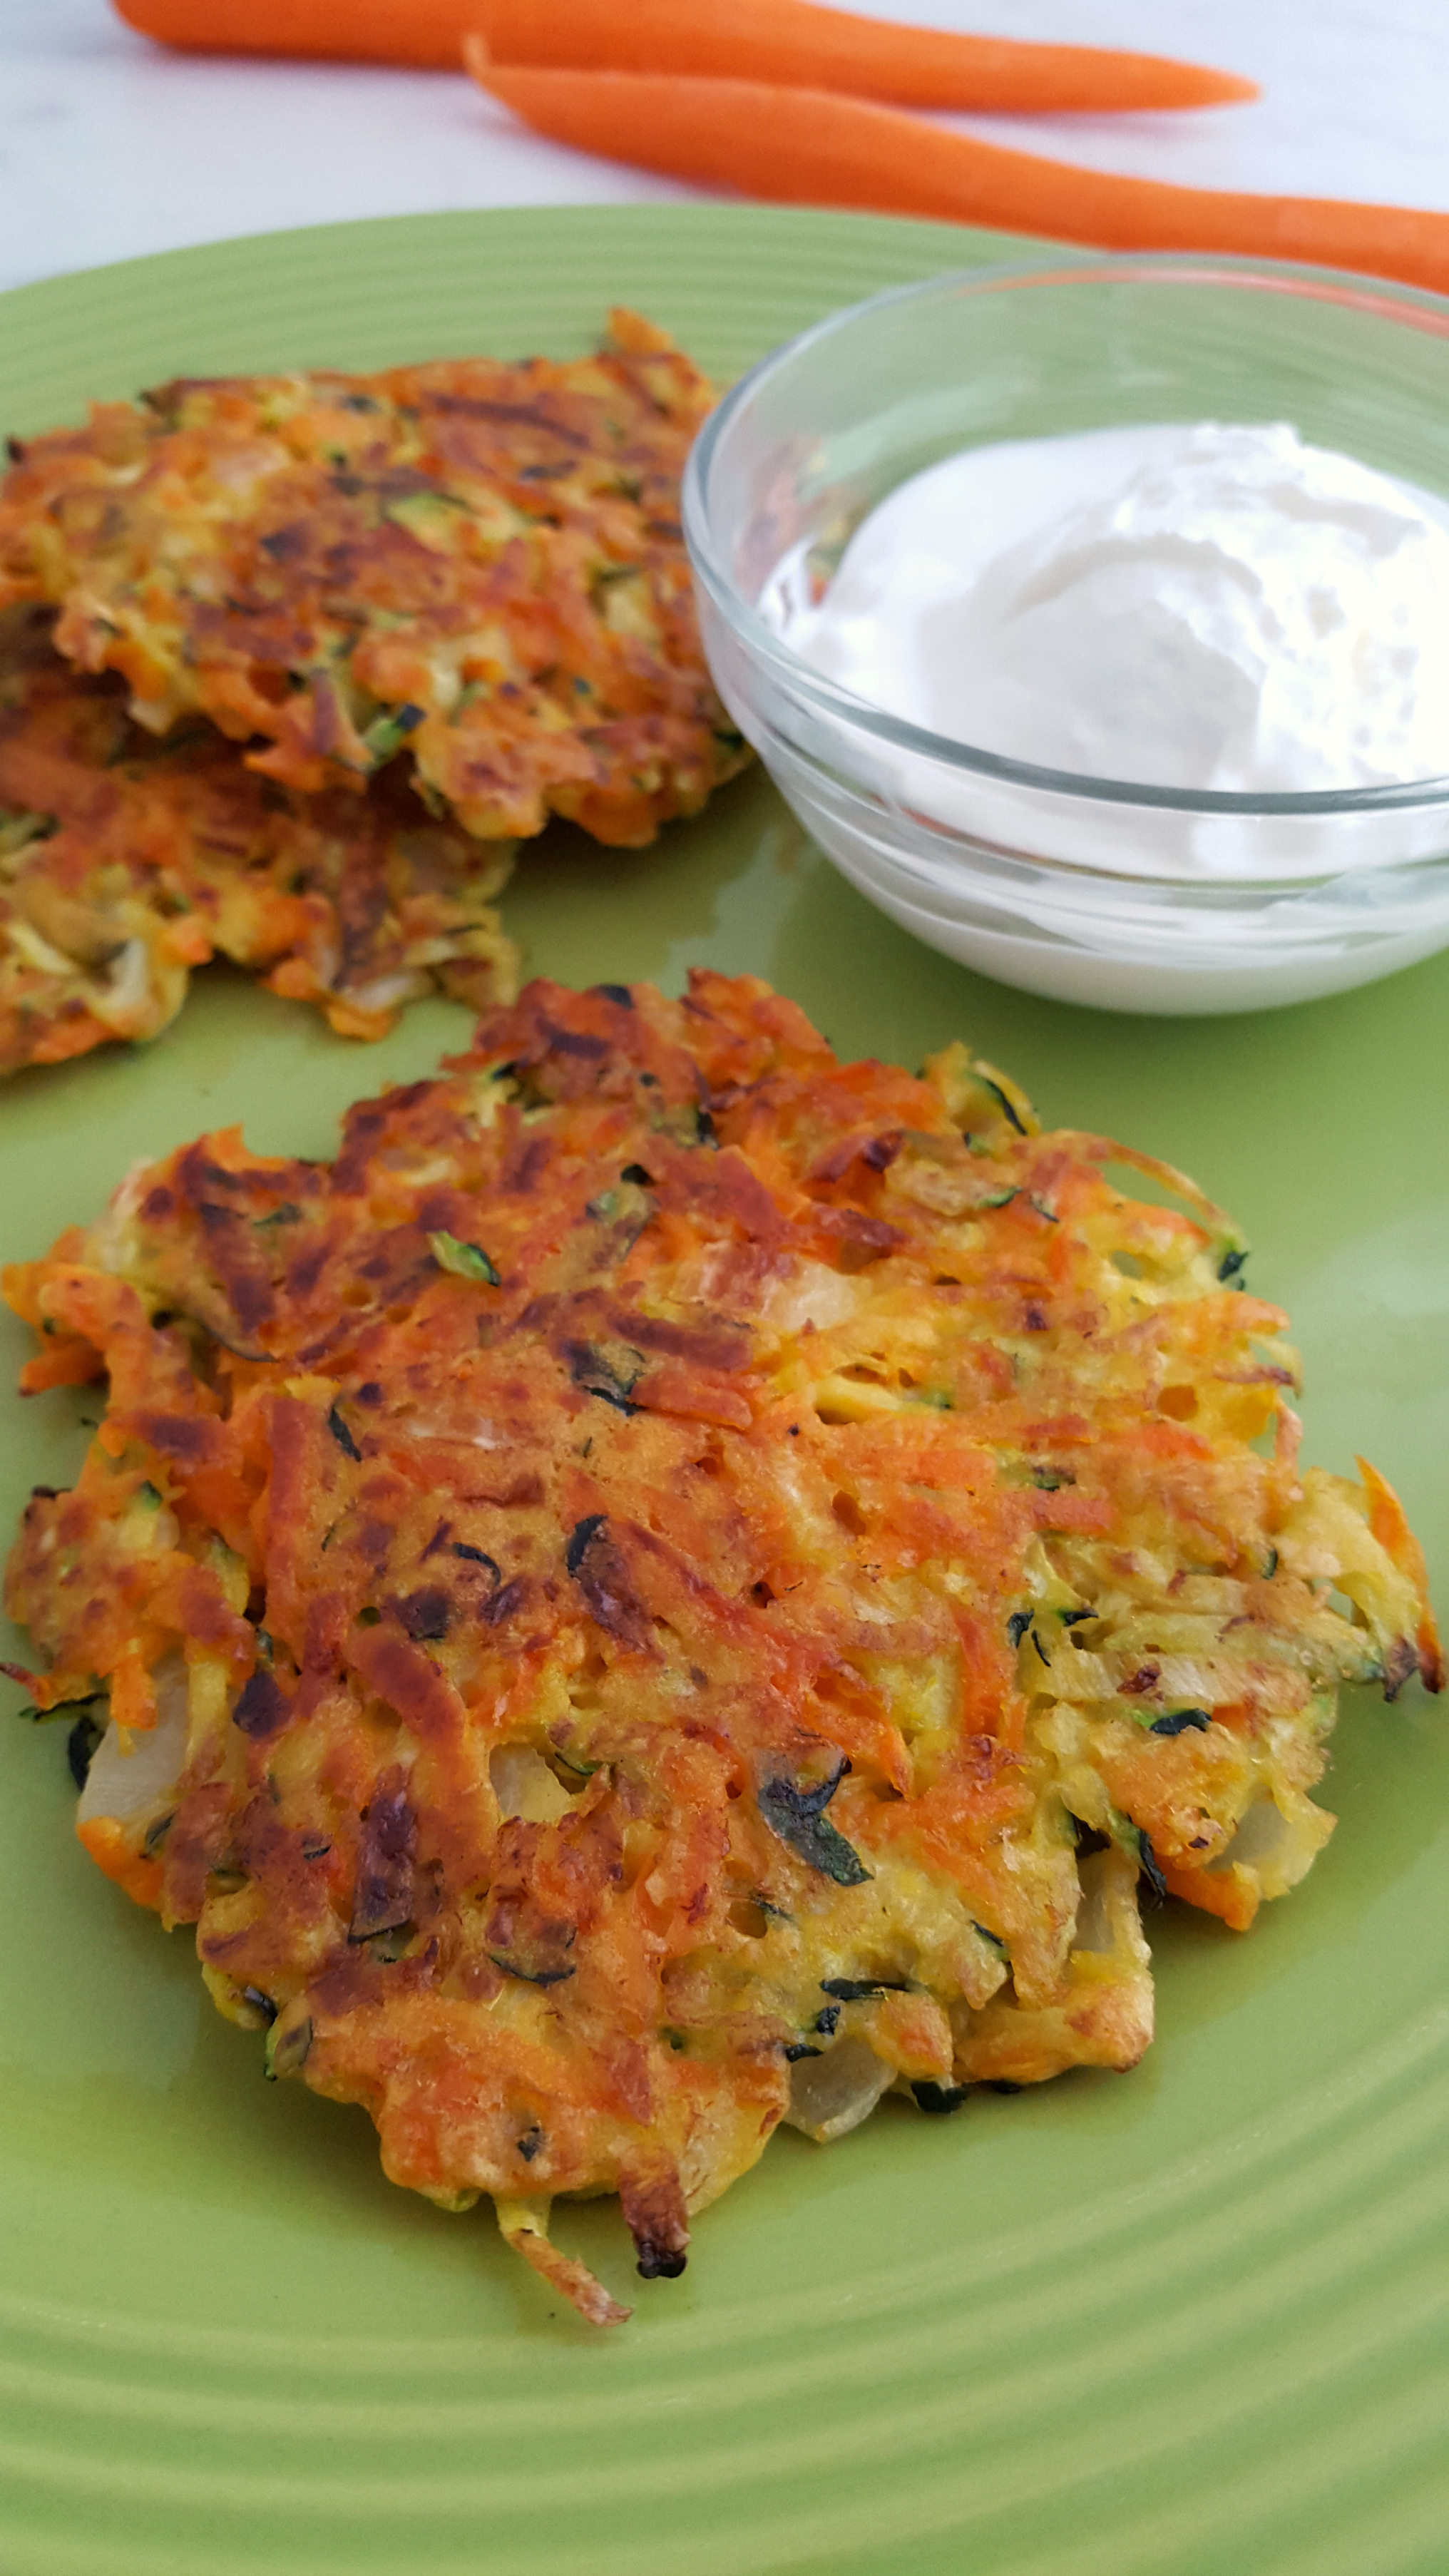 Homemade Garden Vegetable fritters